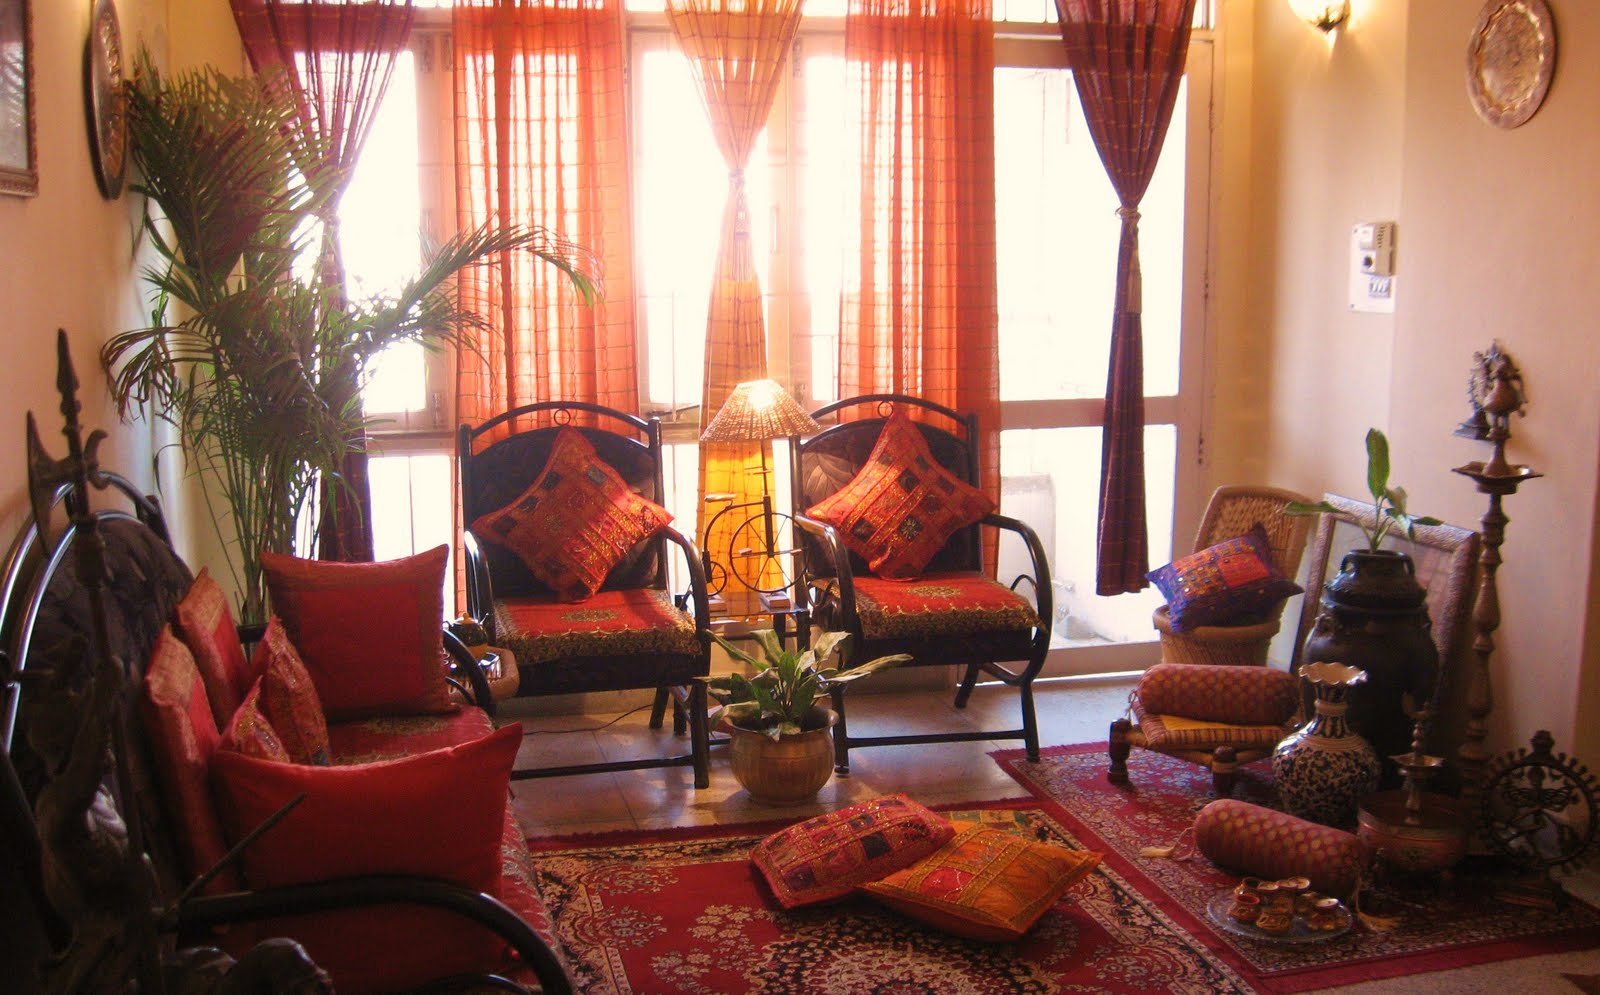 Ethnic indian decor - Home interiors decorating ideas ...